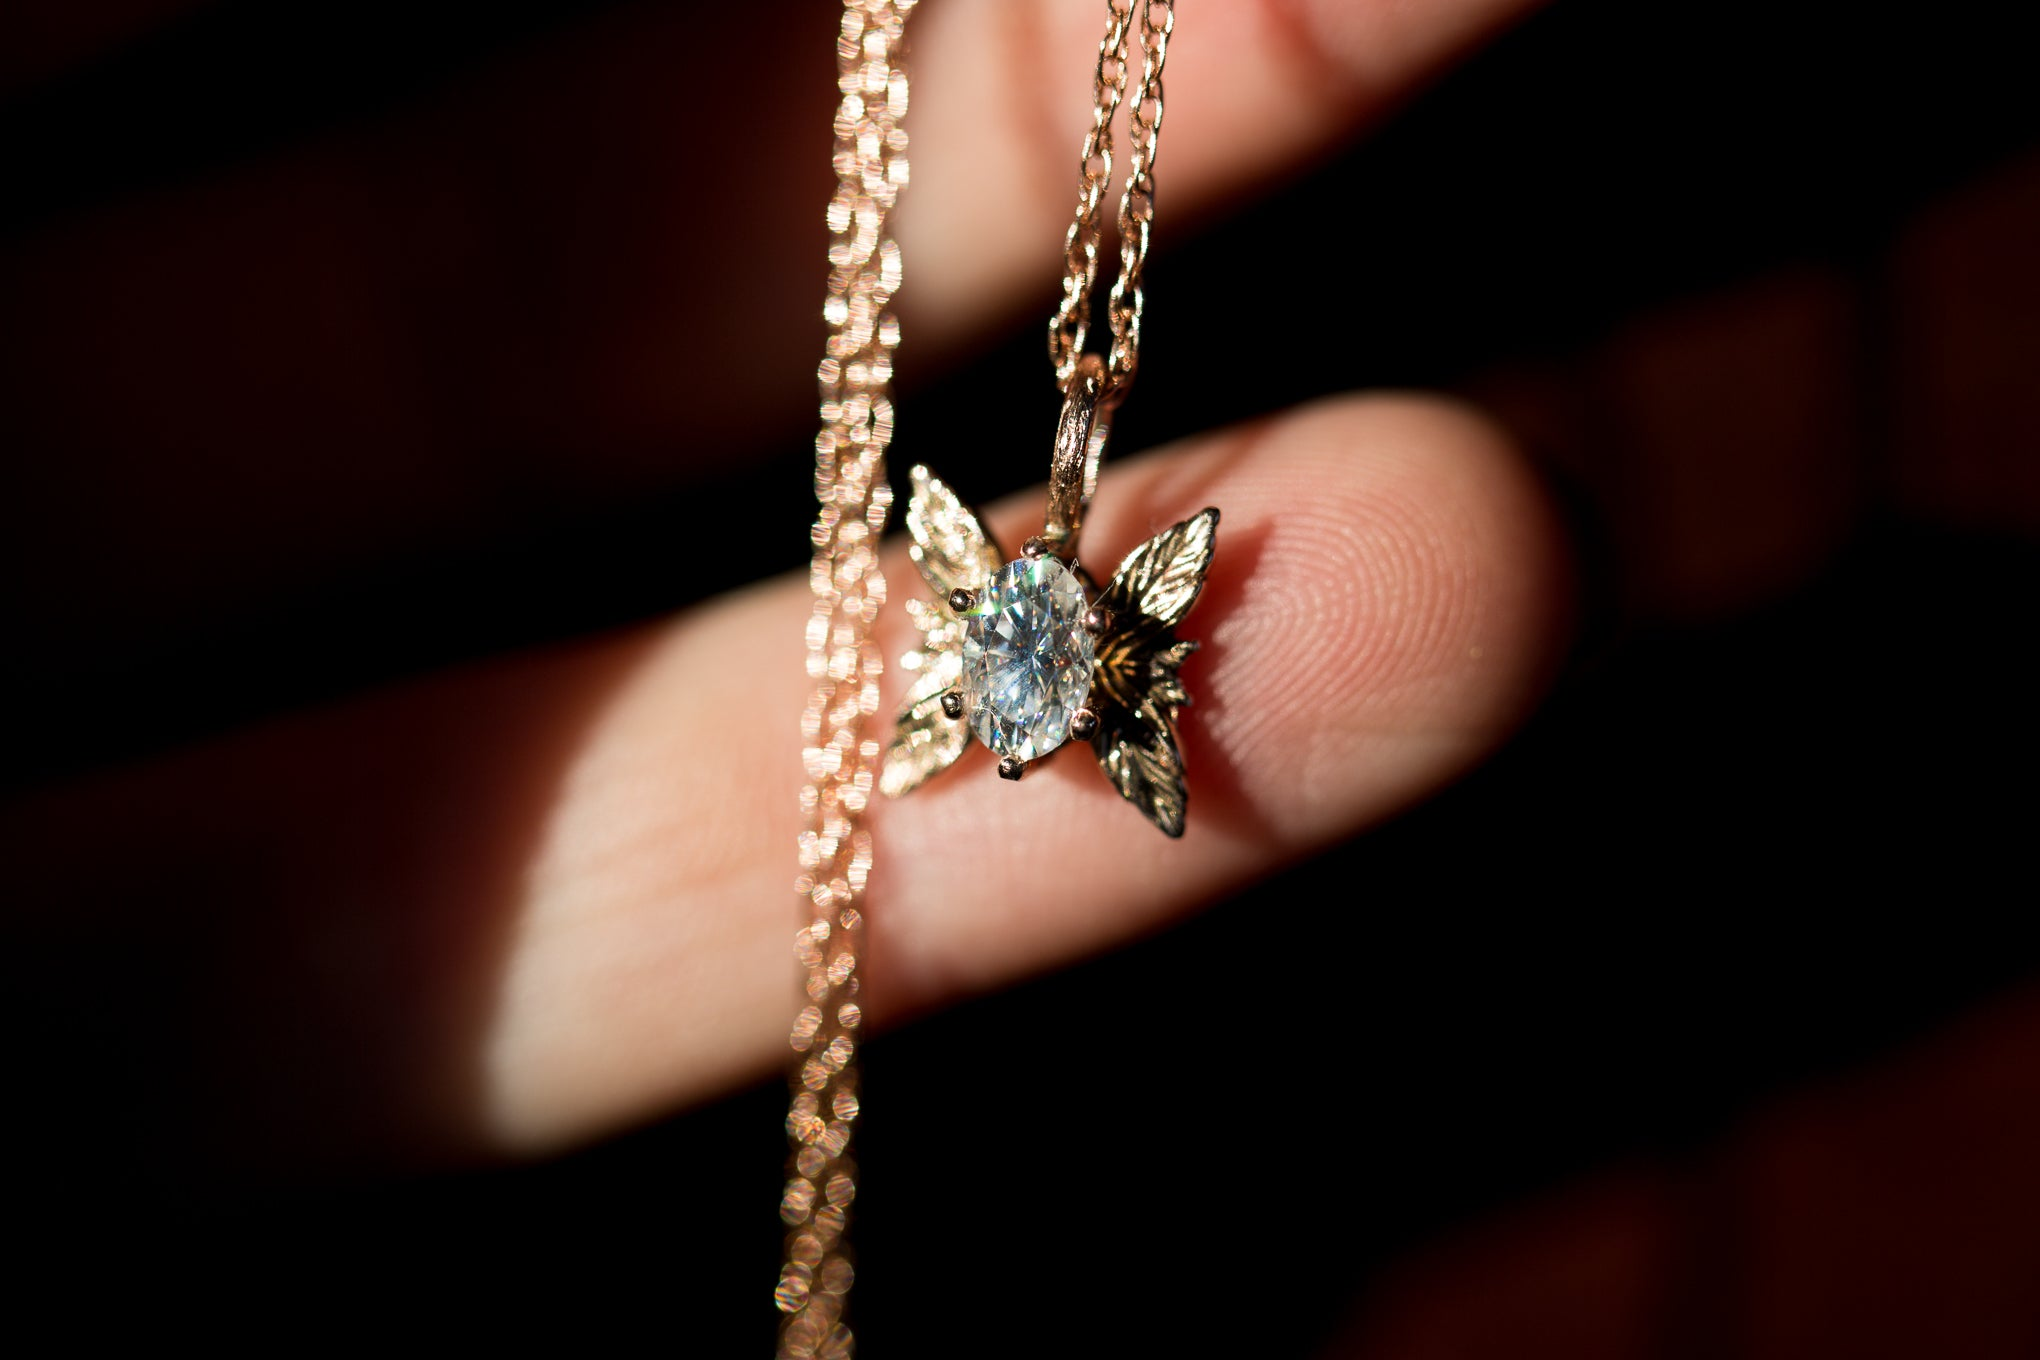 The forest sprite necklace